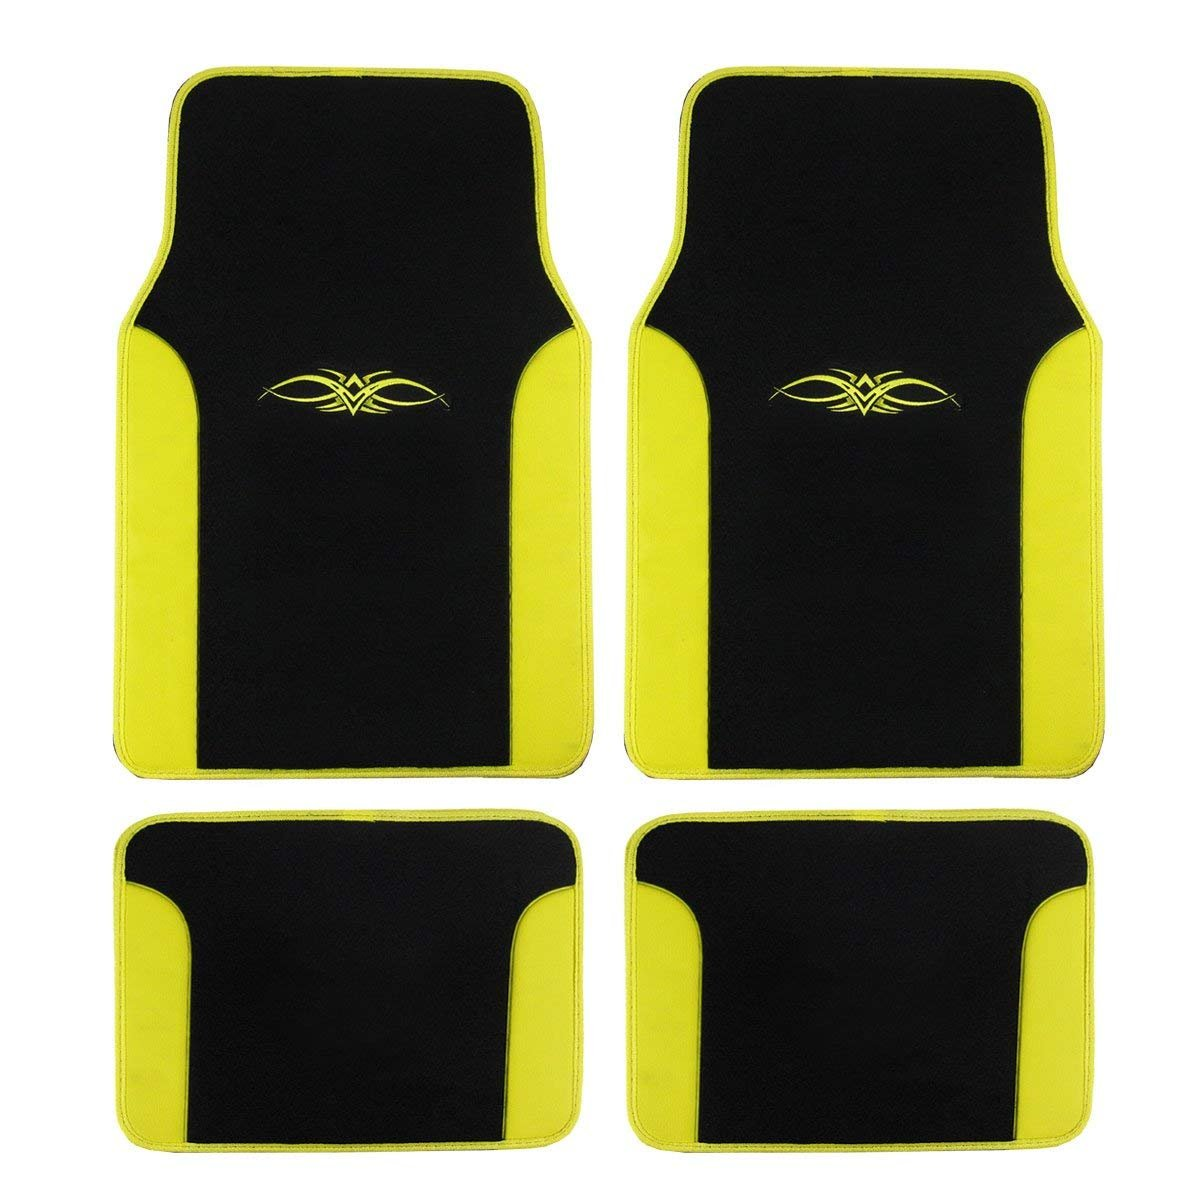 A Set of 4 Universal Fit Plush Carpet with Vinyl Trim Floor Mats For Cars / Trucks (Yellow)